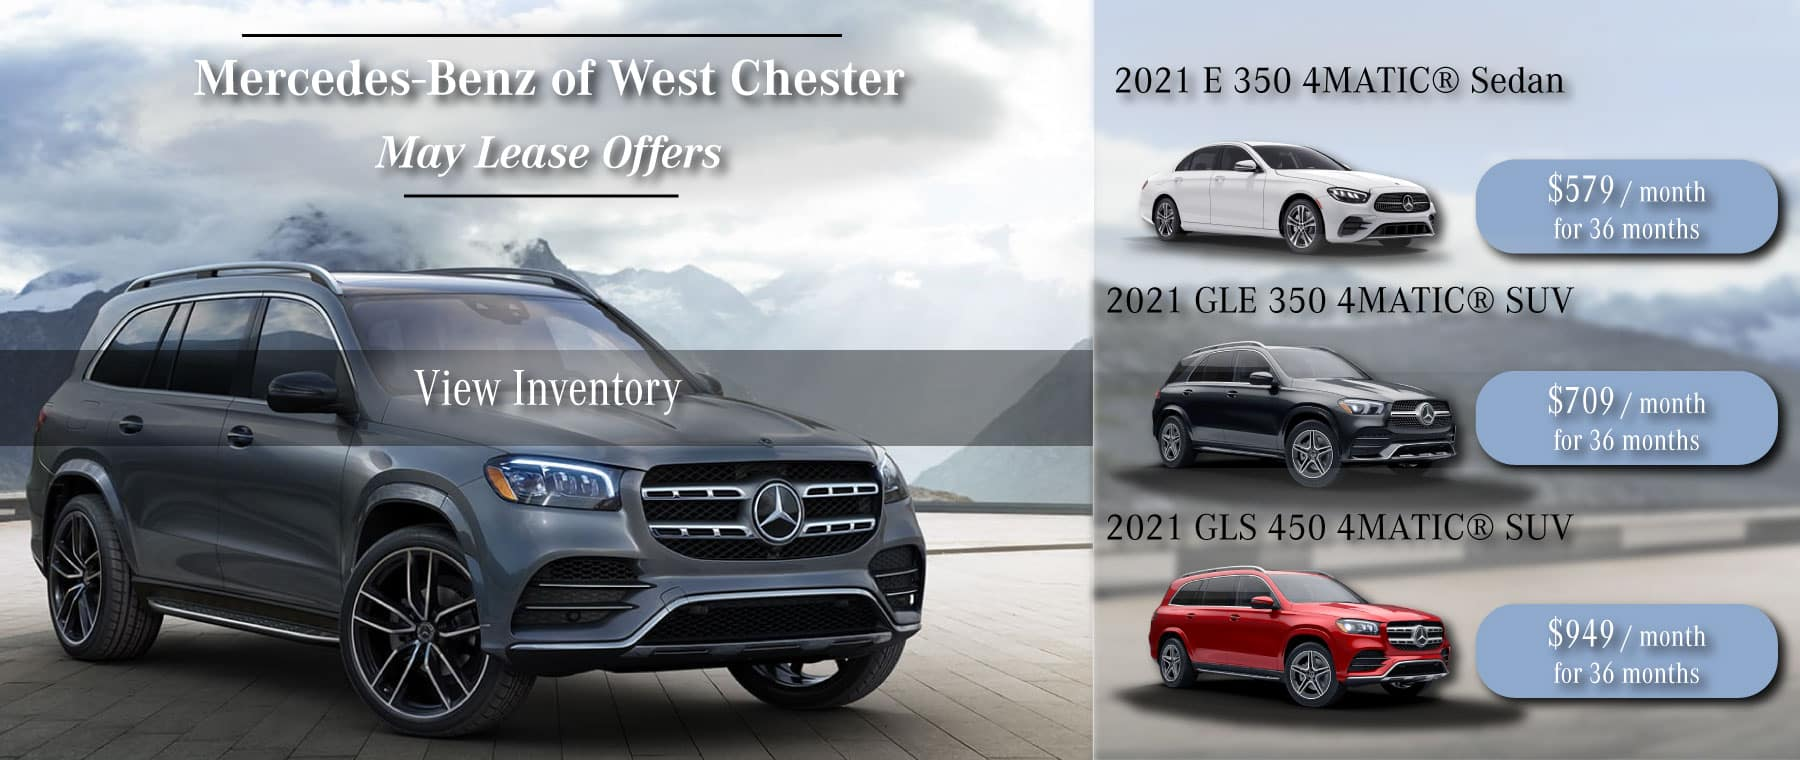 Mercedes-Benz of West Chester Lease Specials